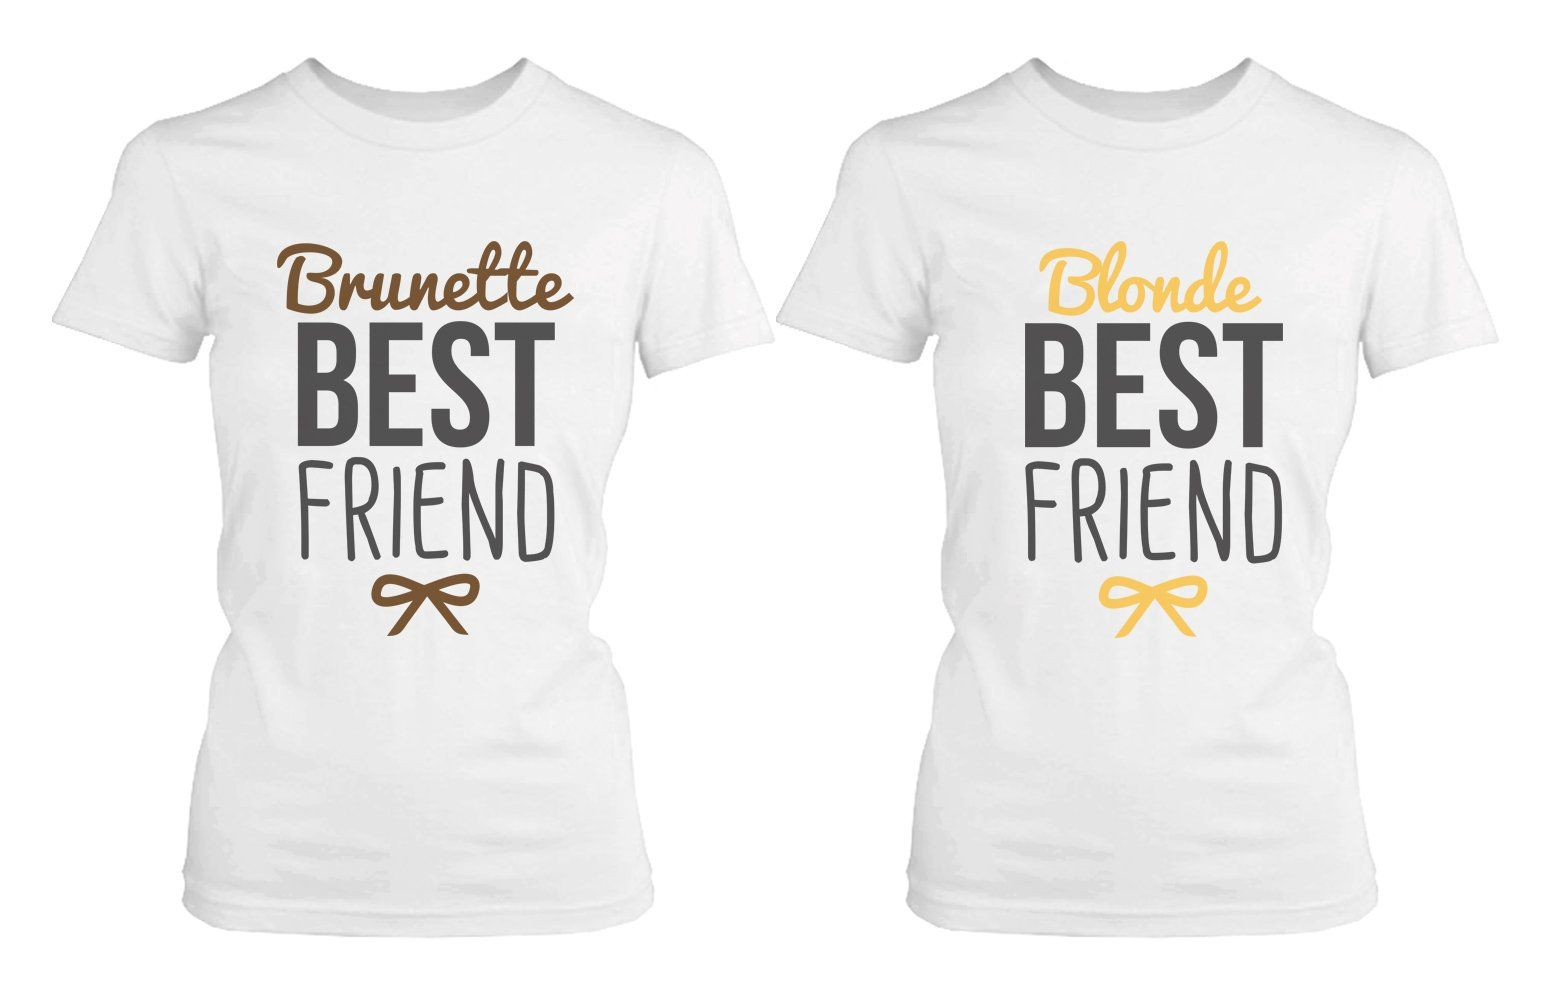 22c6dfd94 Amazon.com  Best Friend Shirts - Blonde and Brunette Best Friends Matching  BFF White Shirts  Clothing